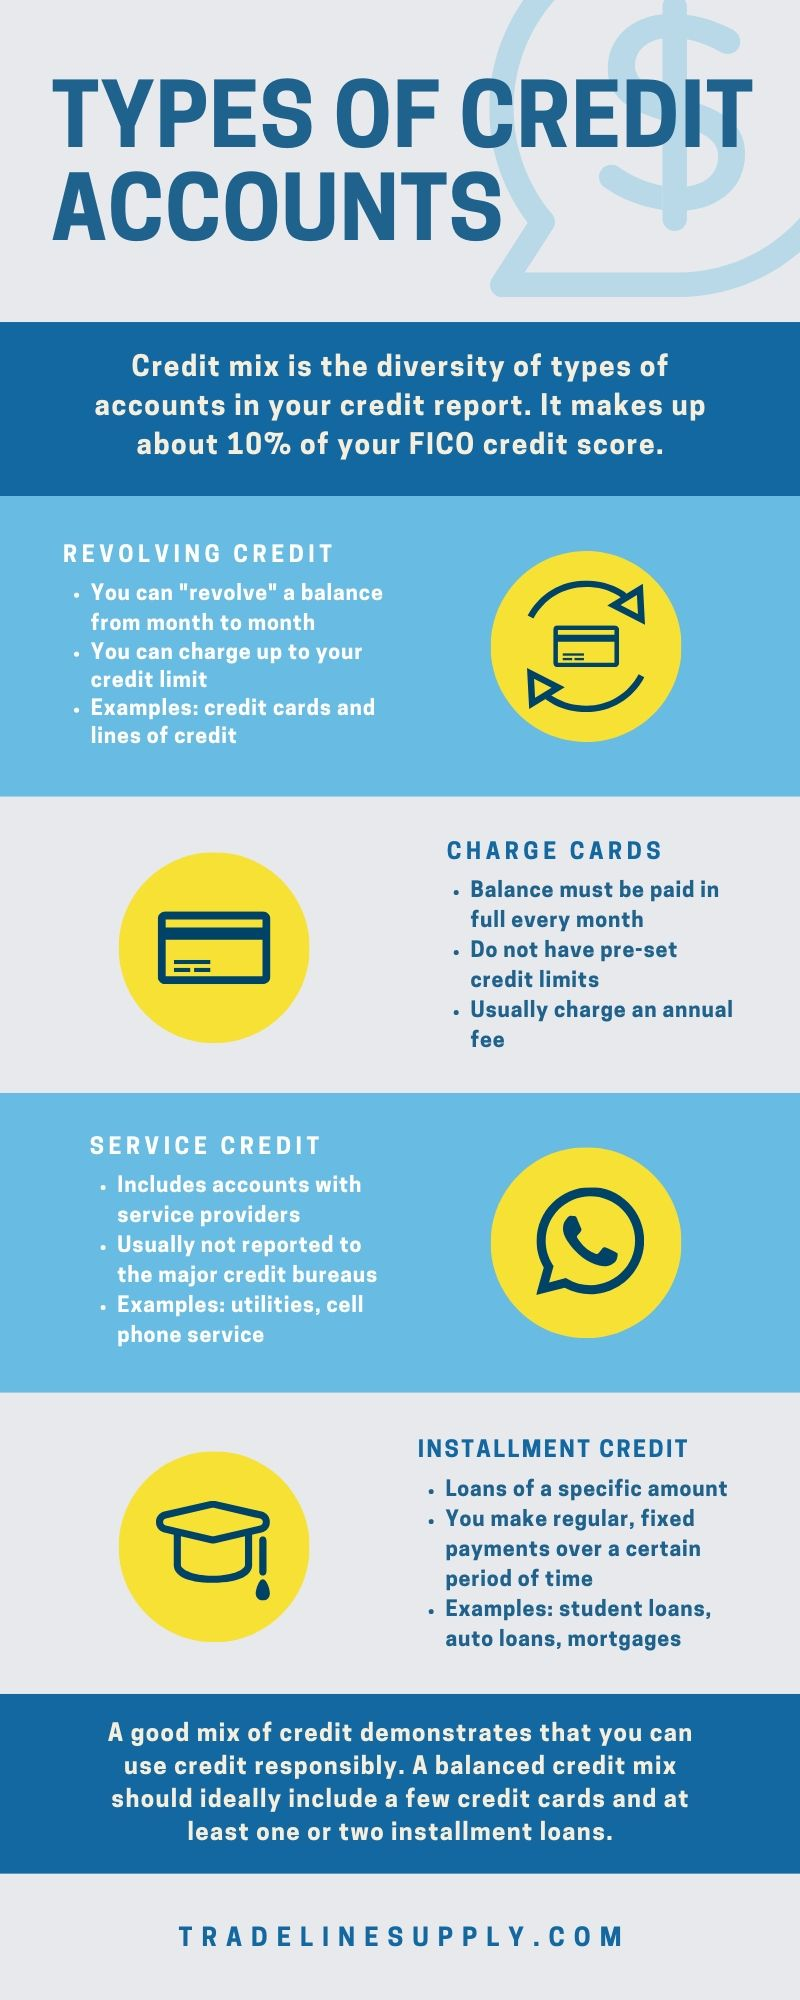 Credit Mix - Types of Credit Accounts [Infographic]